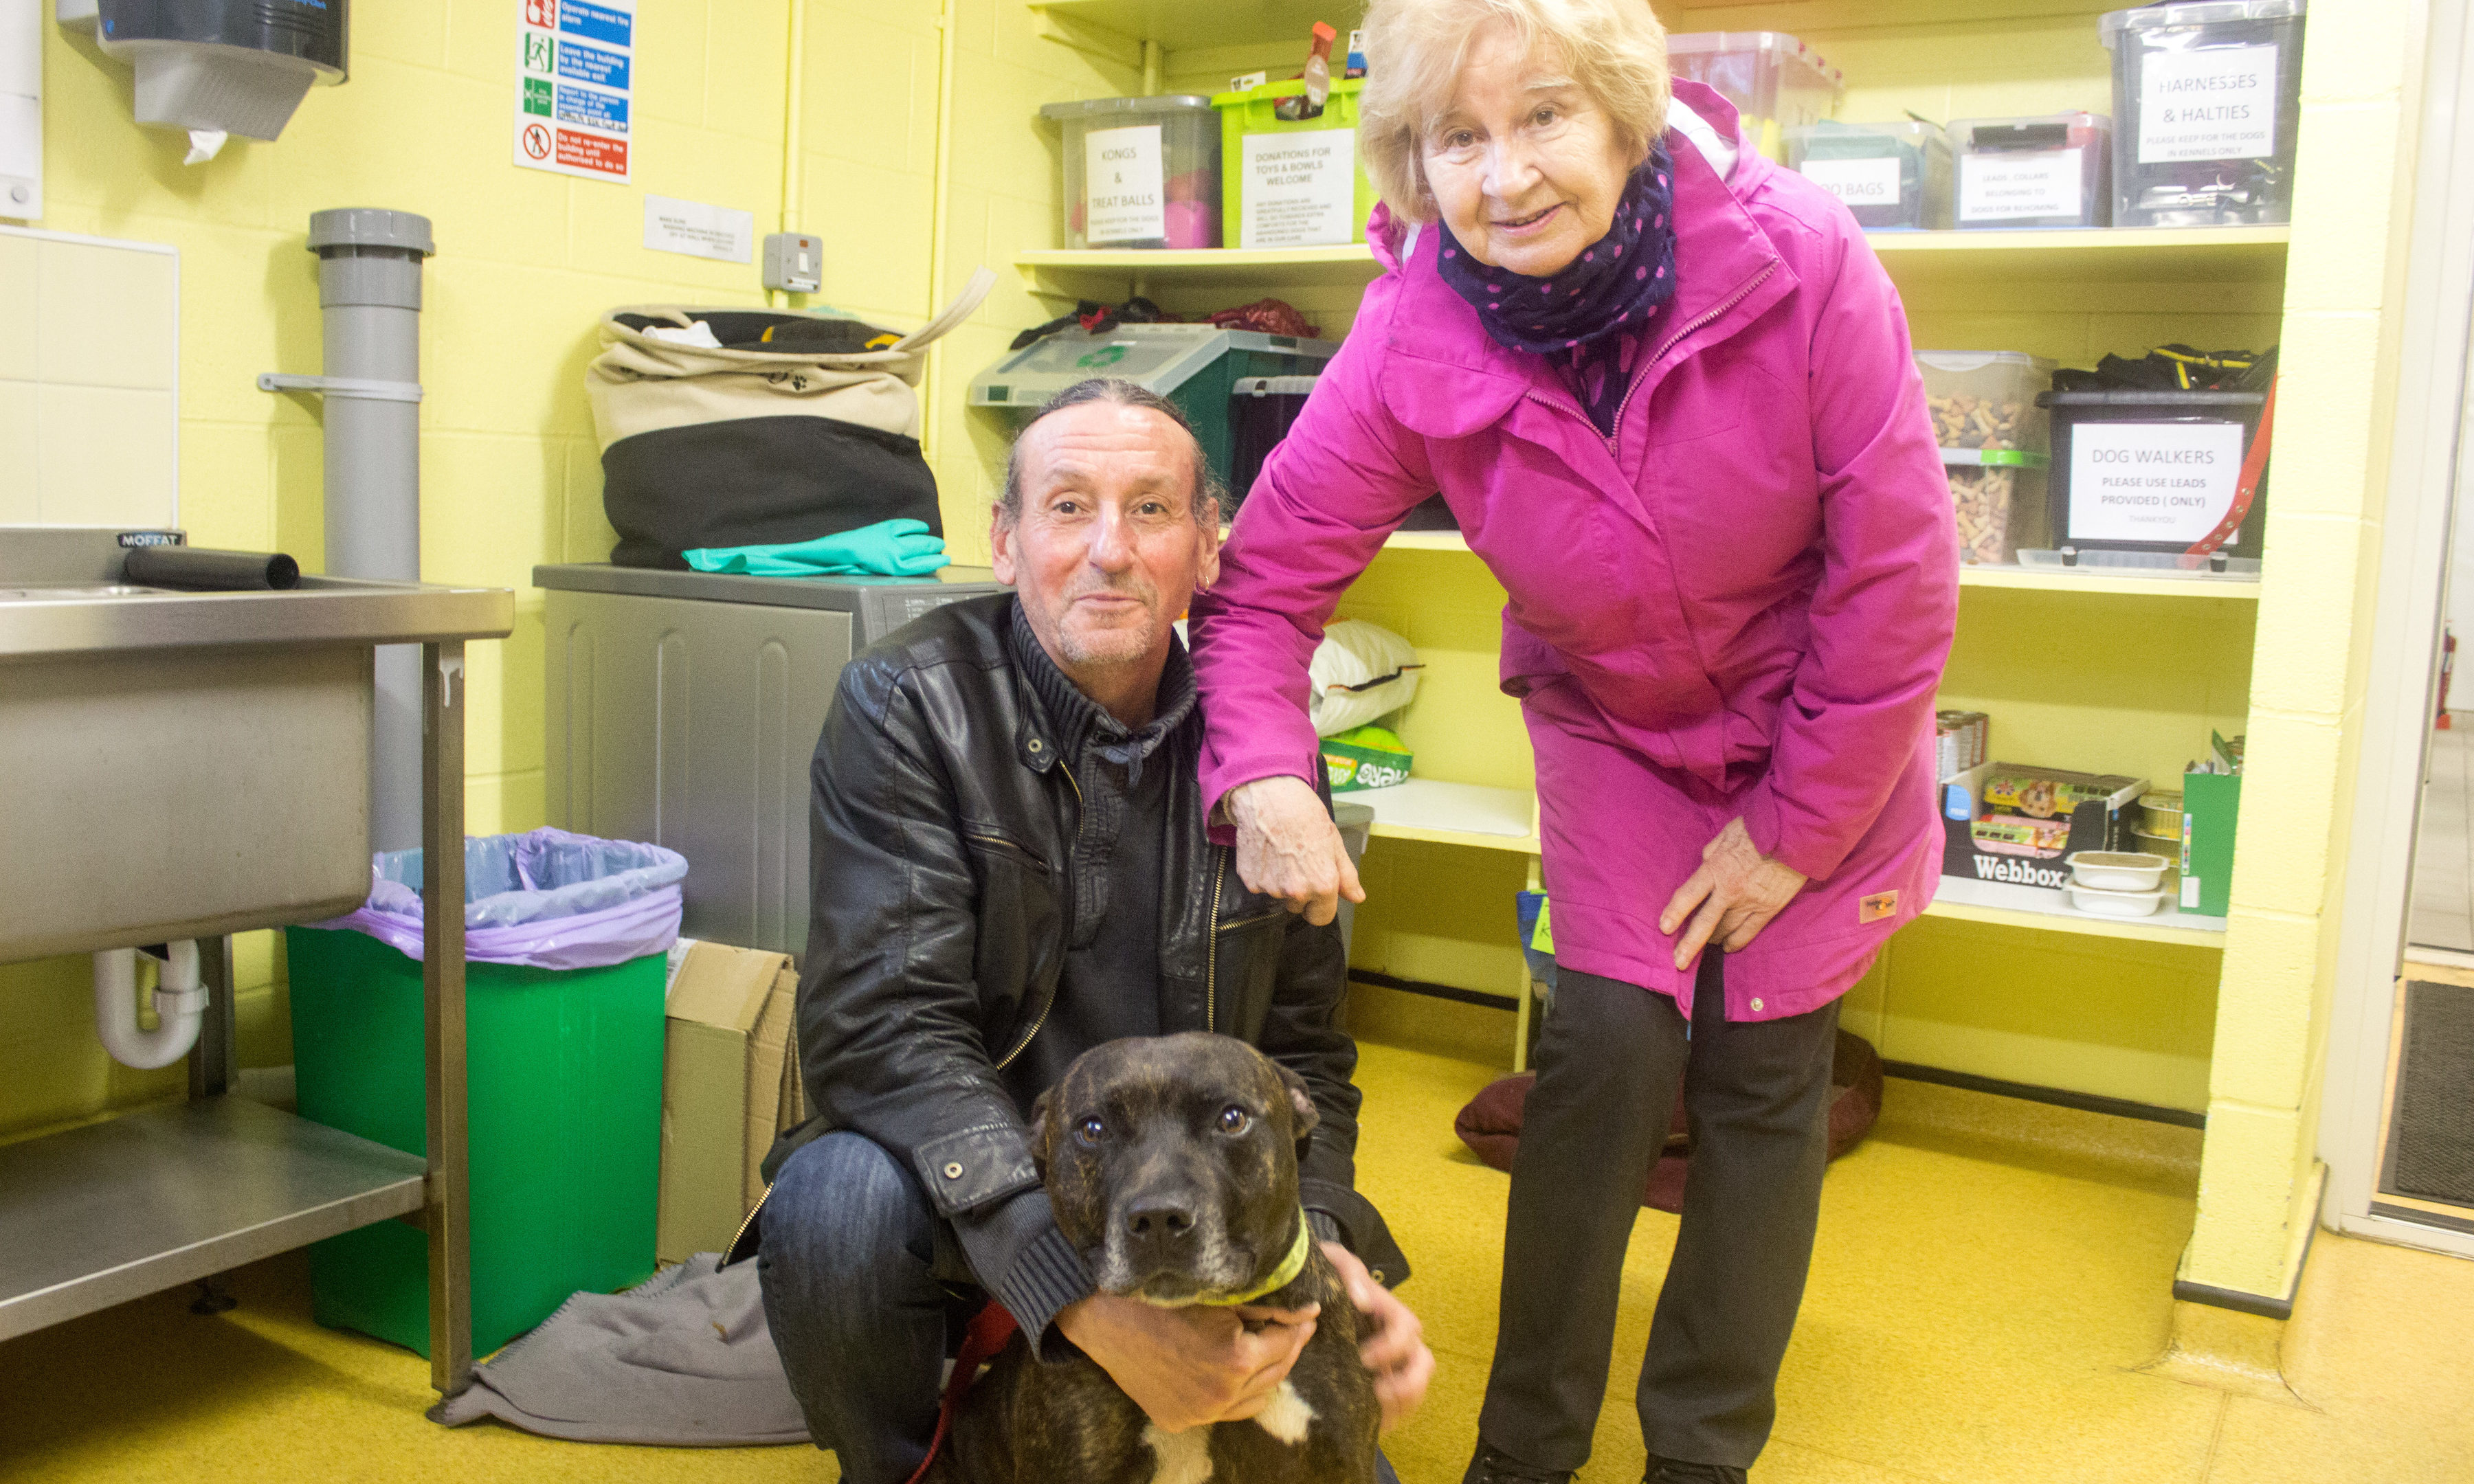 Val and Paul with Tyson, who they are both trying to help find a home.